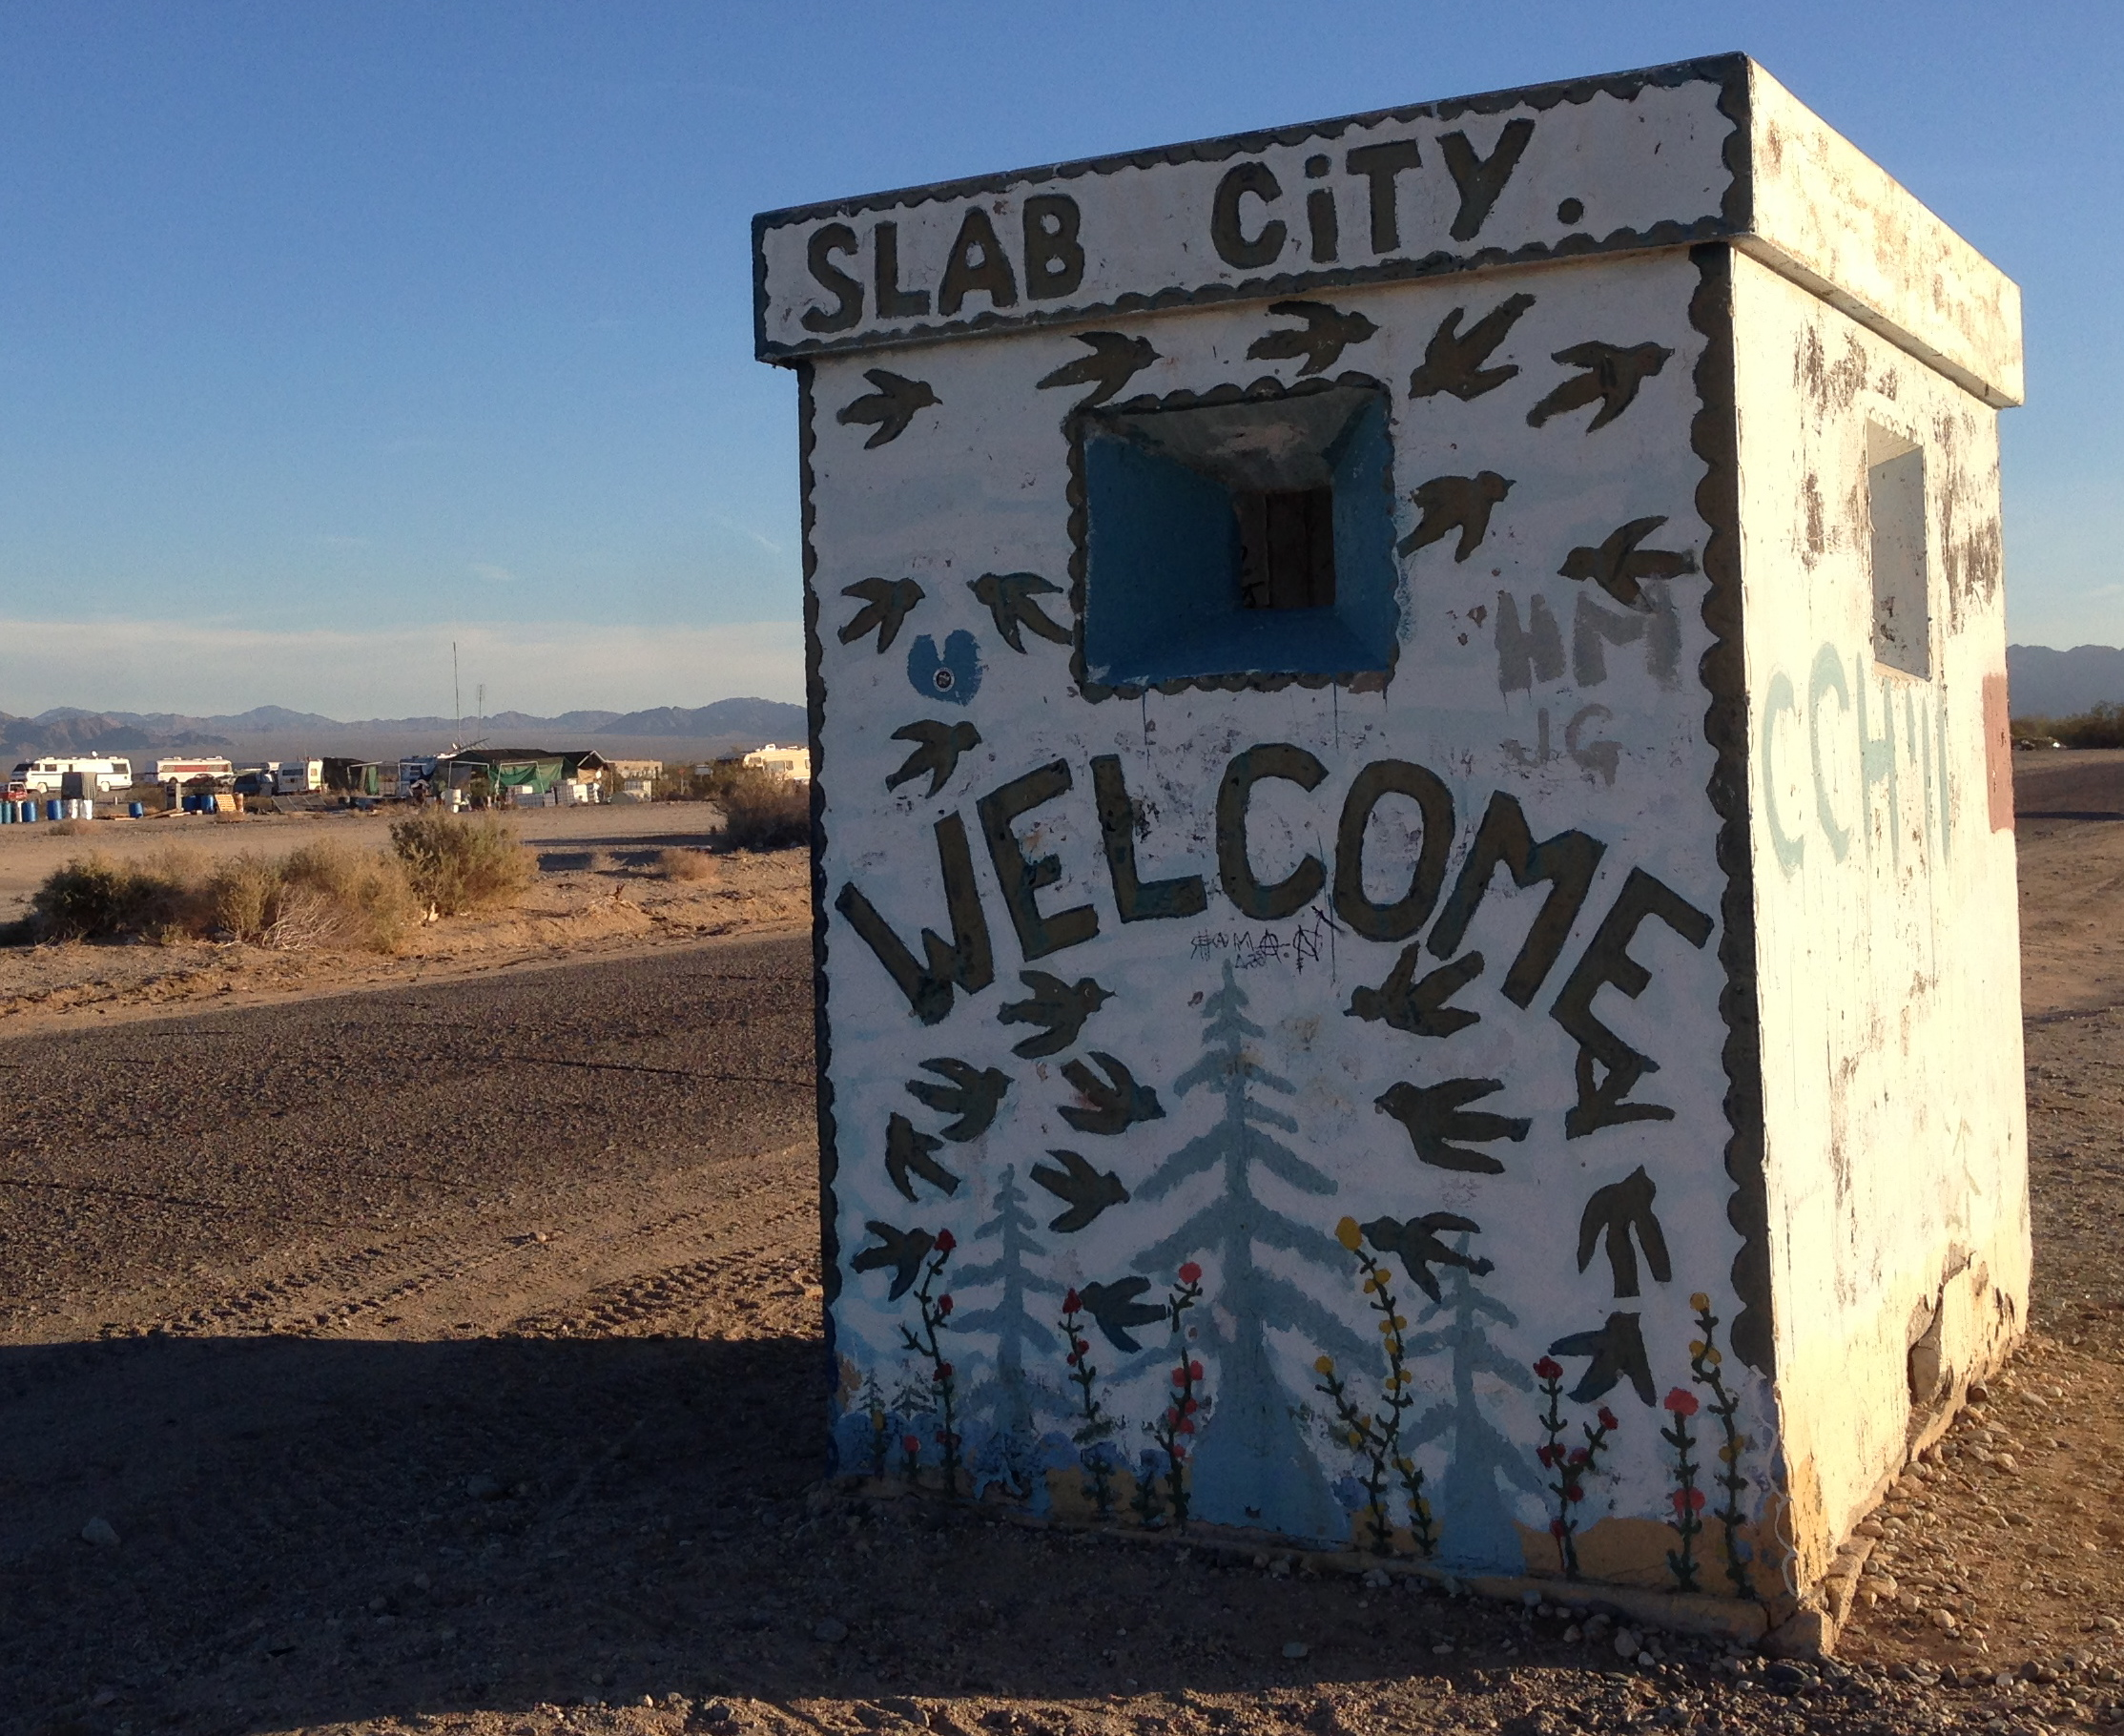 Sing Along With Me: I'm goin' to Slab City… Slab City Here I Come…